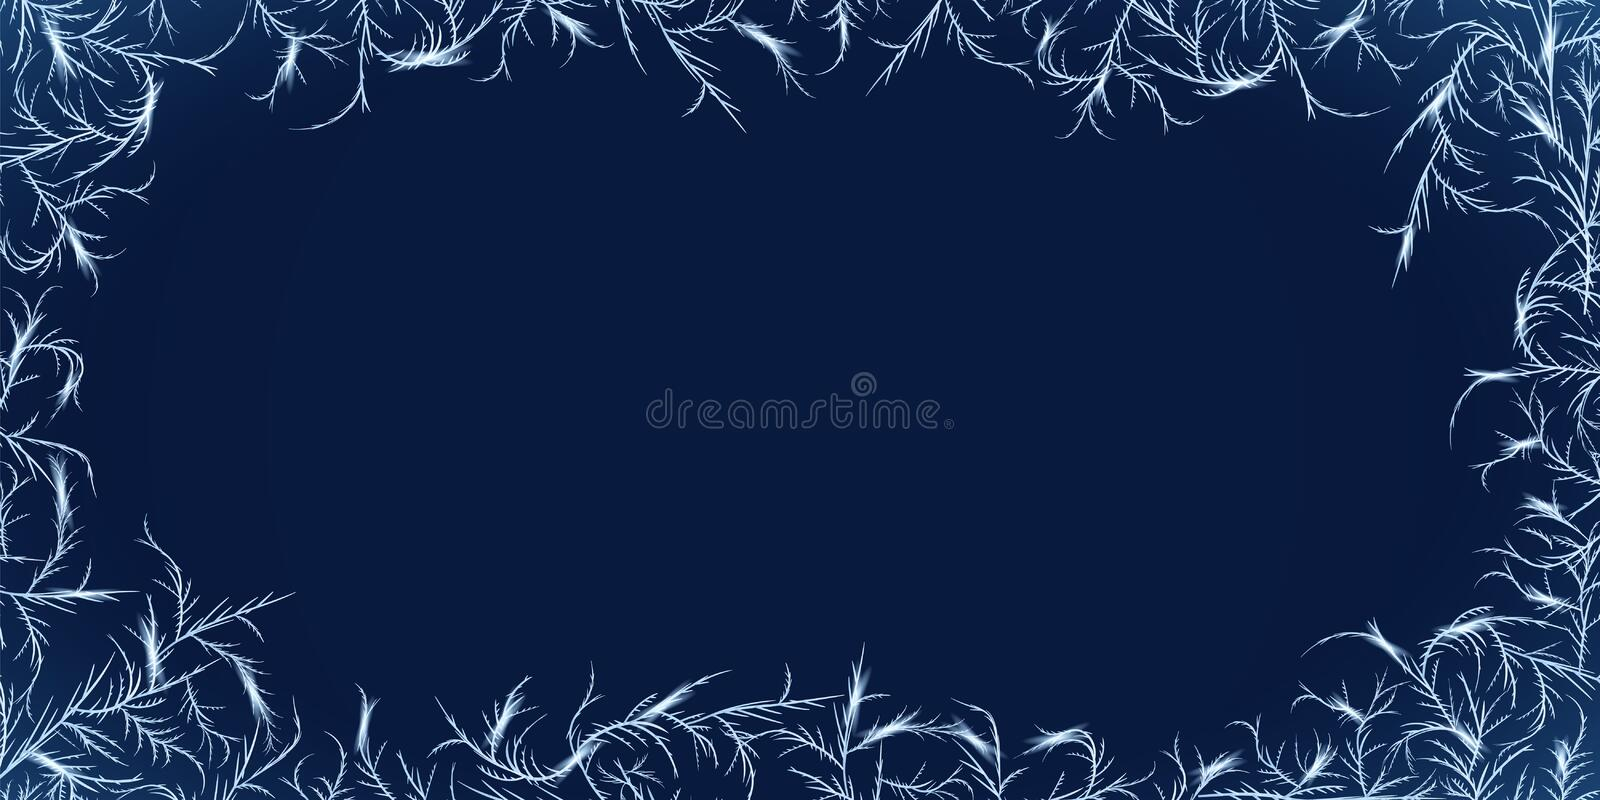 Winter frost ornament frame. Frozen glass with tangled ice crystals texture royalty free illustration